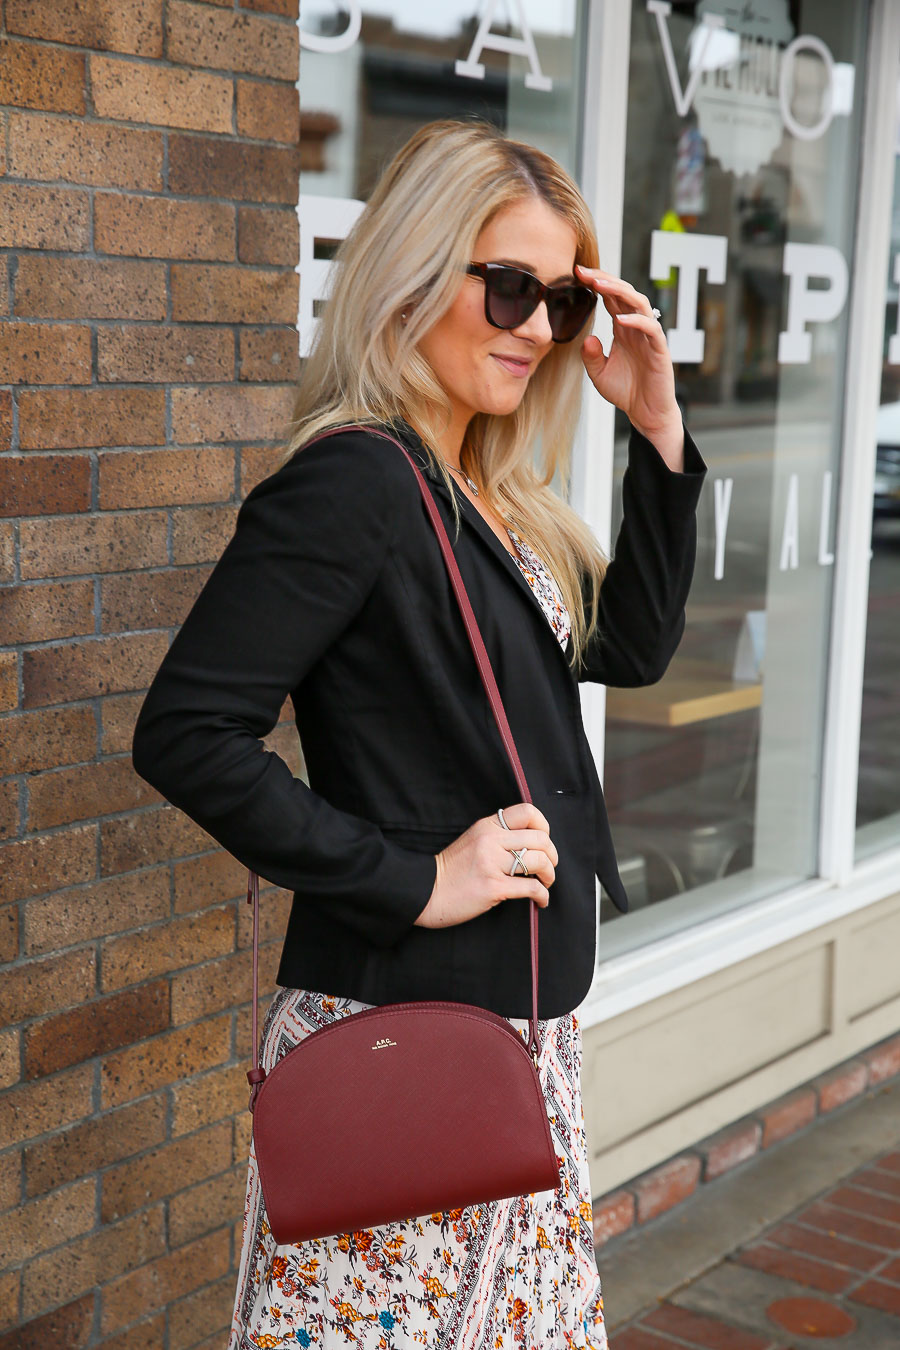 Maxi Dress and Blazer Outfit with Black Slide Sandals